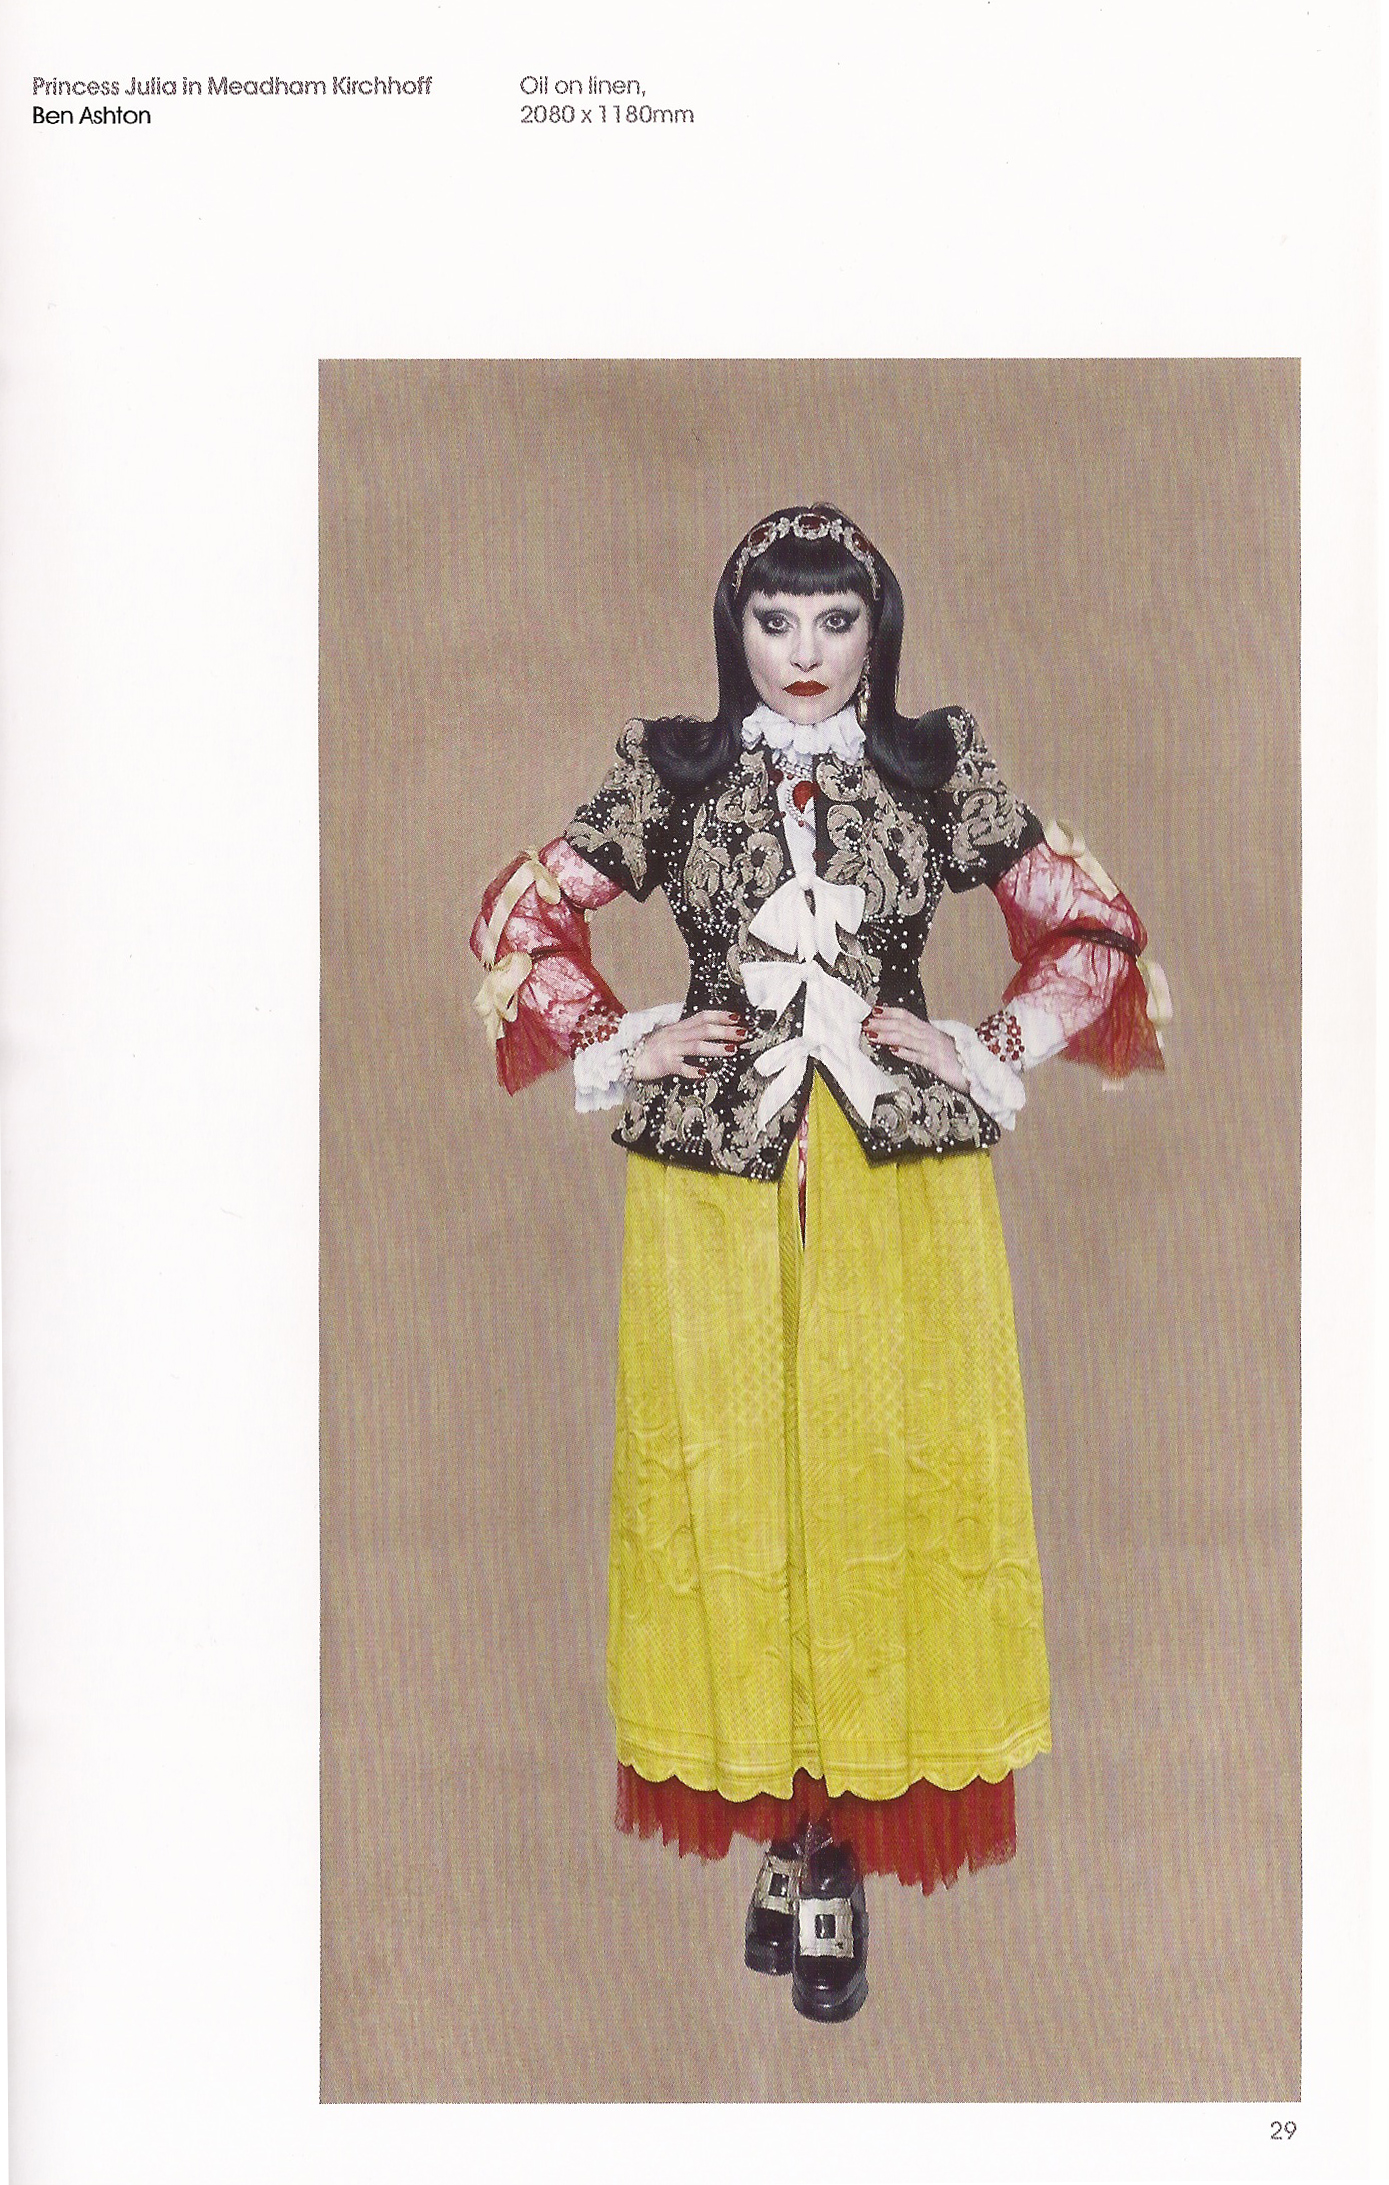 'Princess Julia in Meadham Kirchhoff' by Ben Ashton in the 2014 BP Portrait Award guide